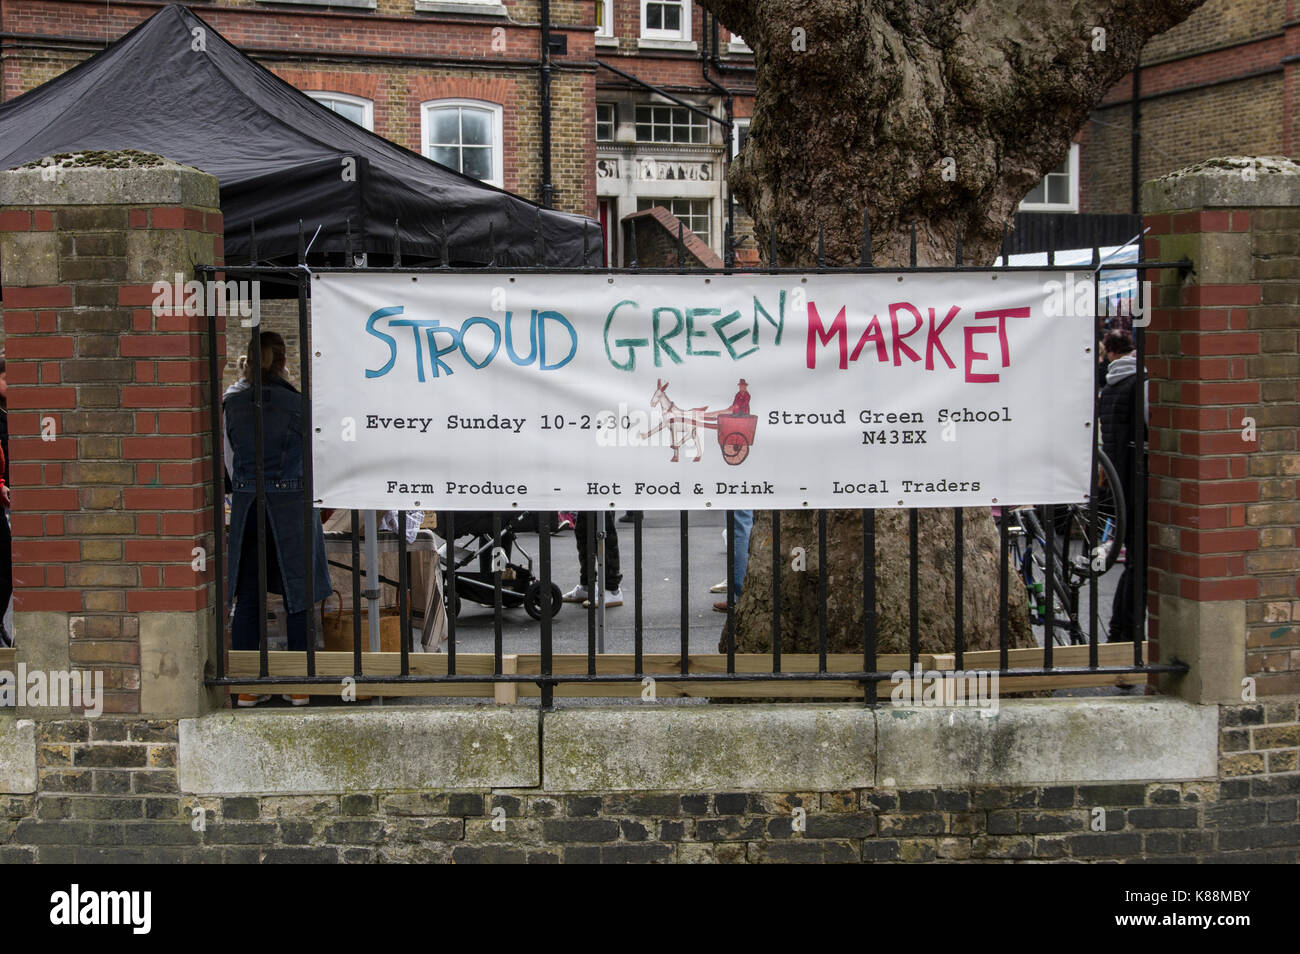 Stroud Green Market sign in London on Ennis Road near Finsbury Park Station selling mainly vegetarian and vegan - Stock Image